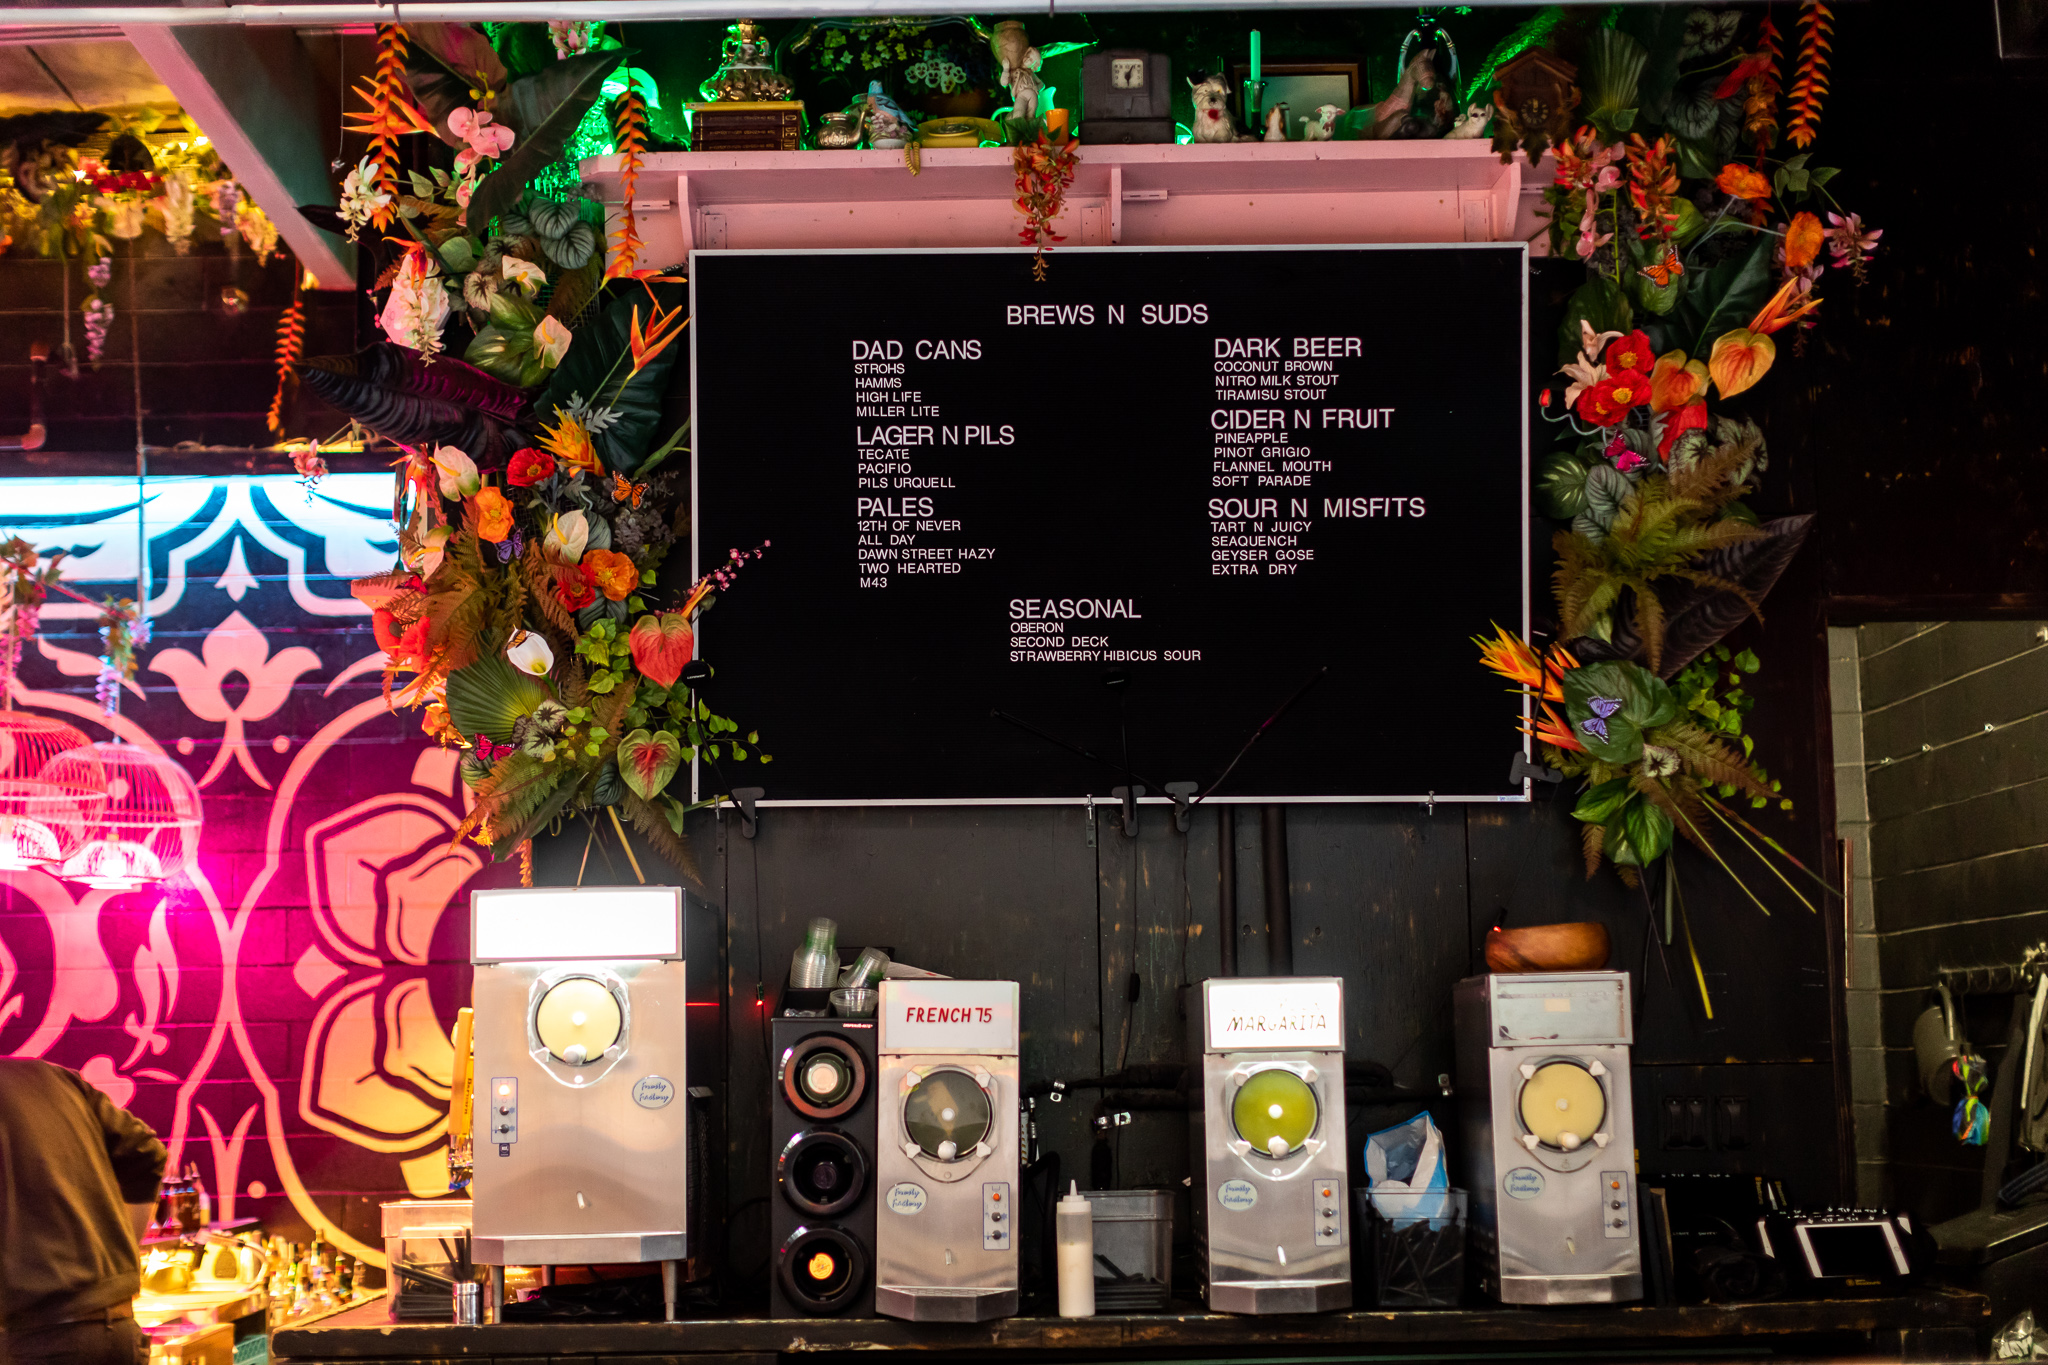 A menu board surrounded by colorful flowers is hung above frozen cocktail machines.